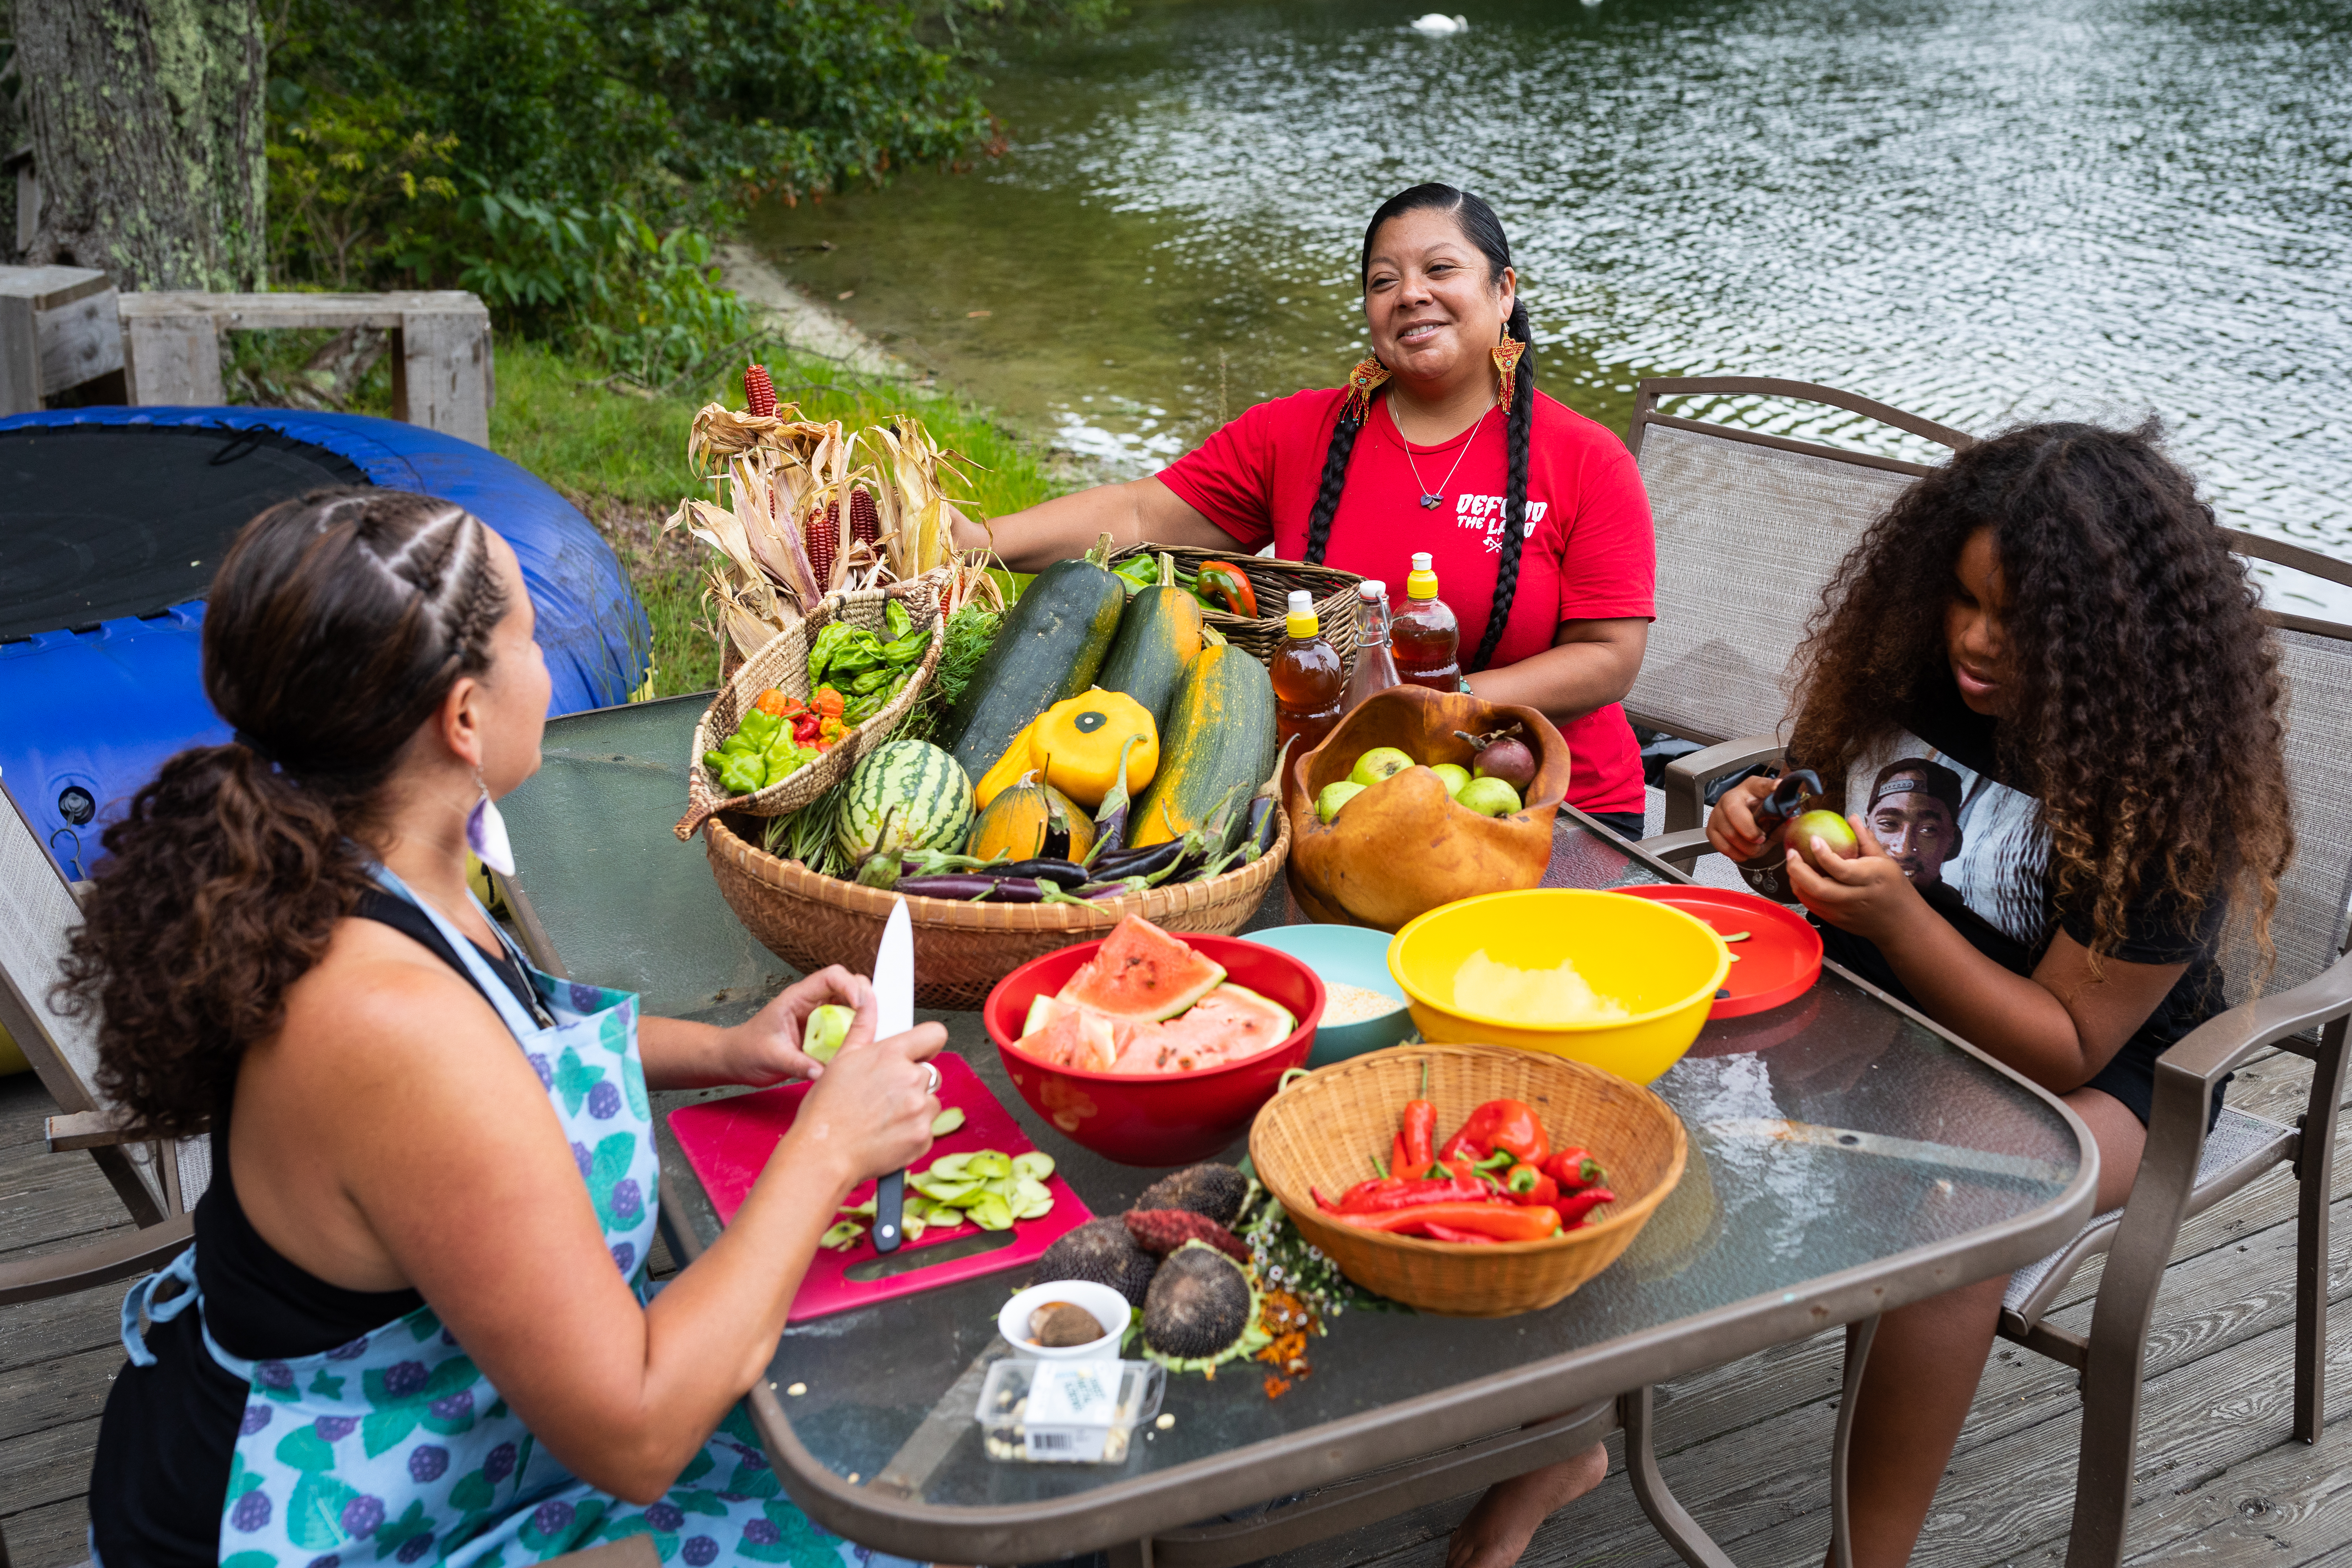 Rachael Devaney speaks with fellow Eastern Woodlands Rematriation Collective member Kristen Wyman while preparing a number of fruits and vegetables in Centerville.